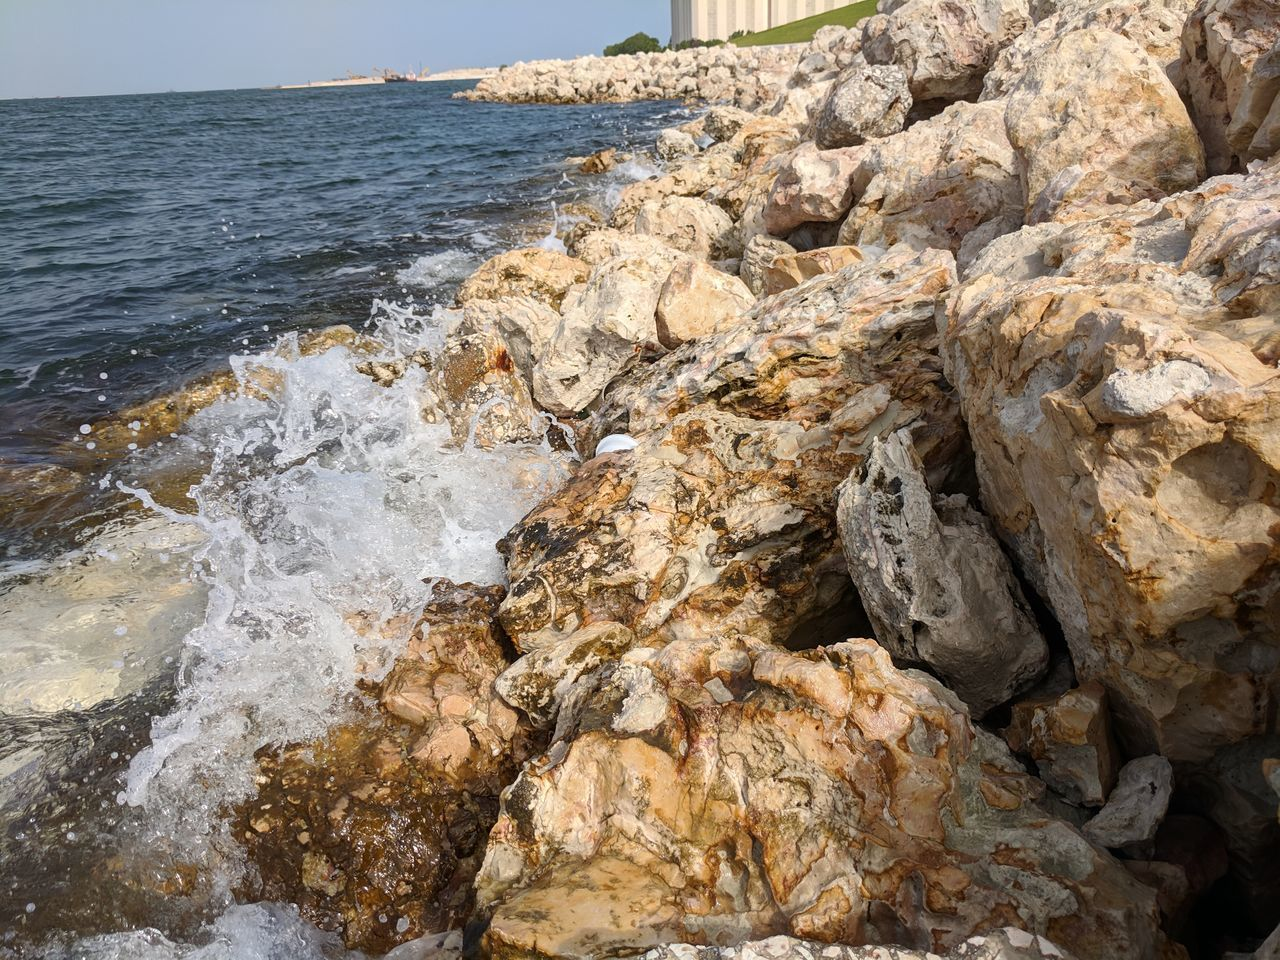 water, sea, rock, rock - object, solid, motion, beach, land, nature, beauty in nature, no people, scenics - nature, wave, rock formation, sport, day, outdoors, aquatic sport, tranquility, power in nature, rocky coastline, breaking